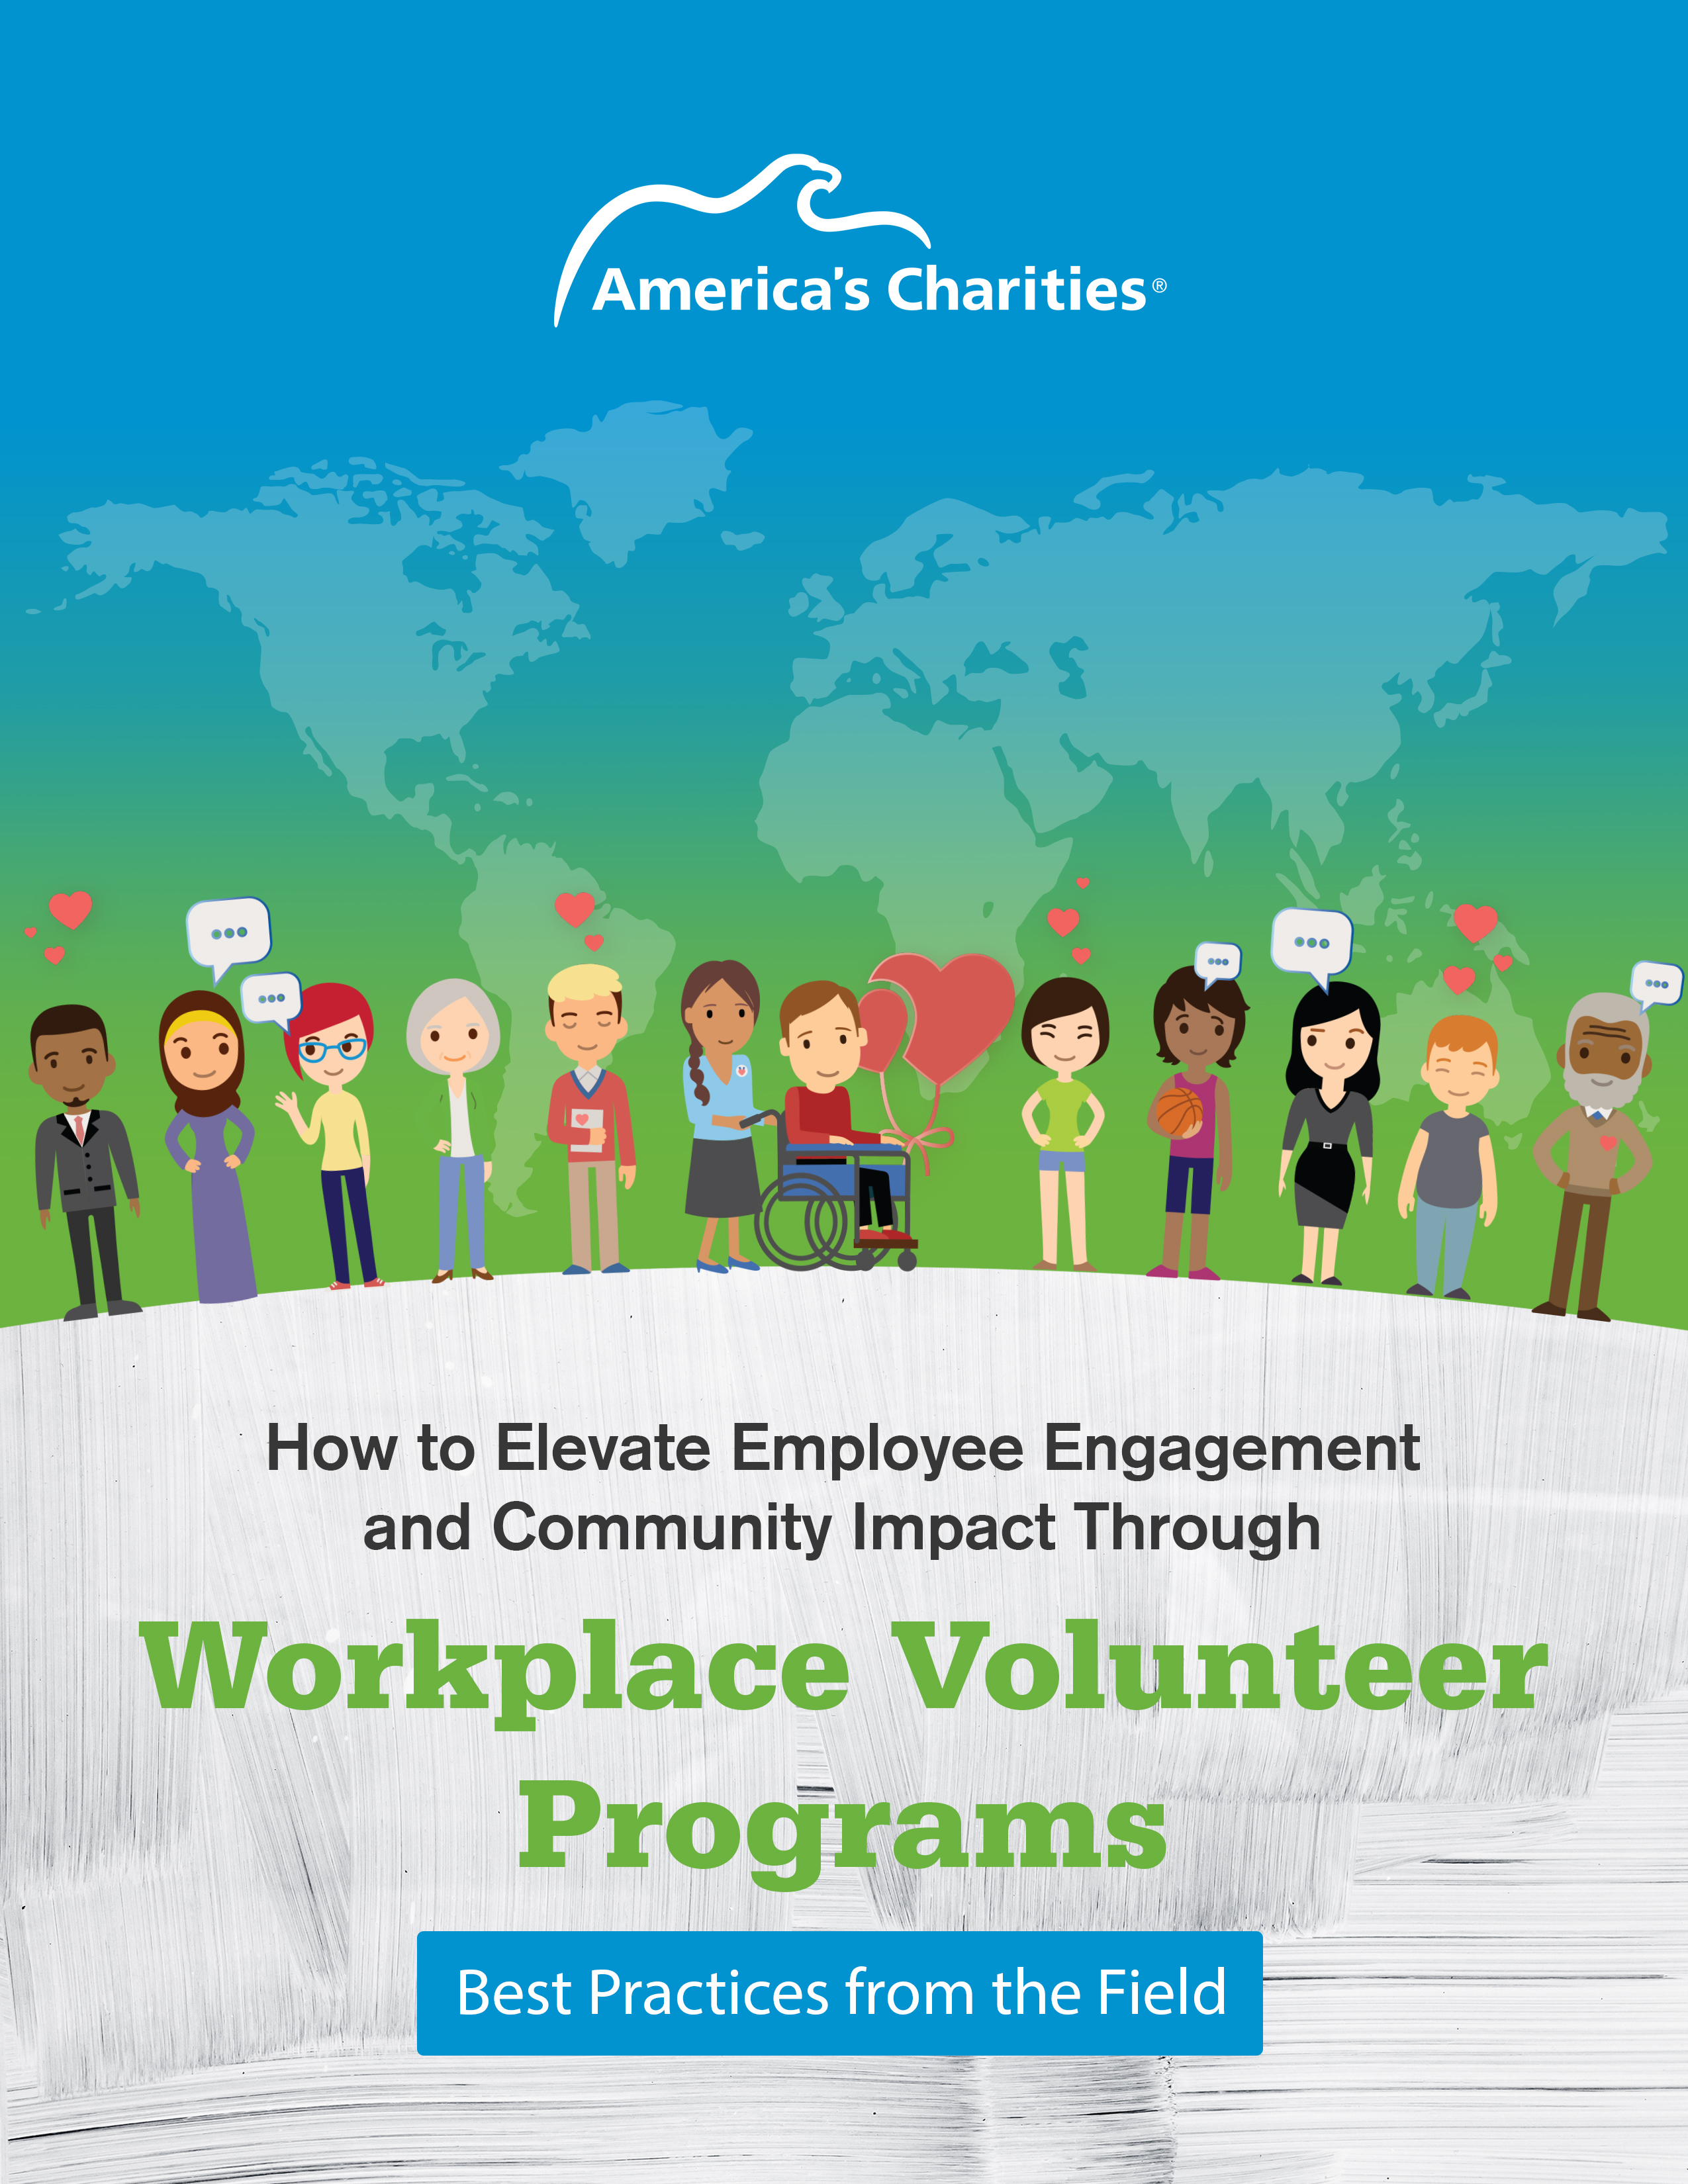 How to Elevate Employee Engagement and Community Impact Through Workplace Volunteer Programs